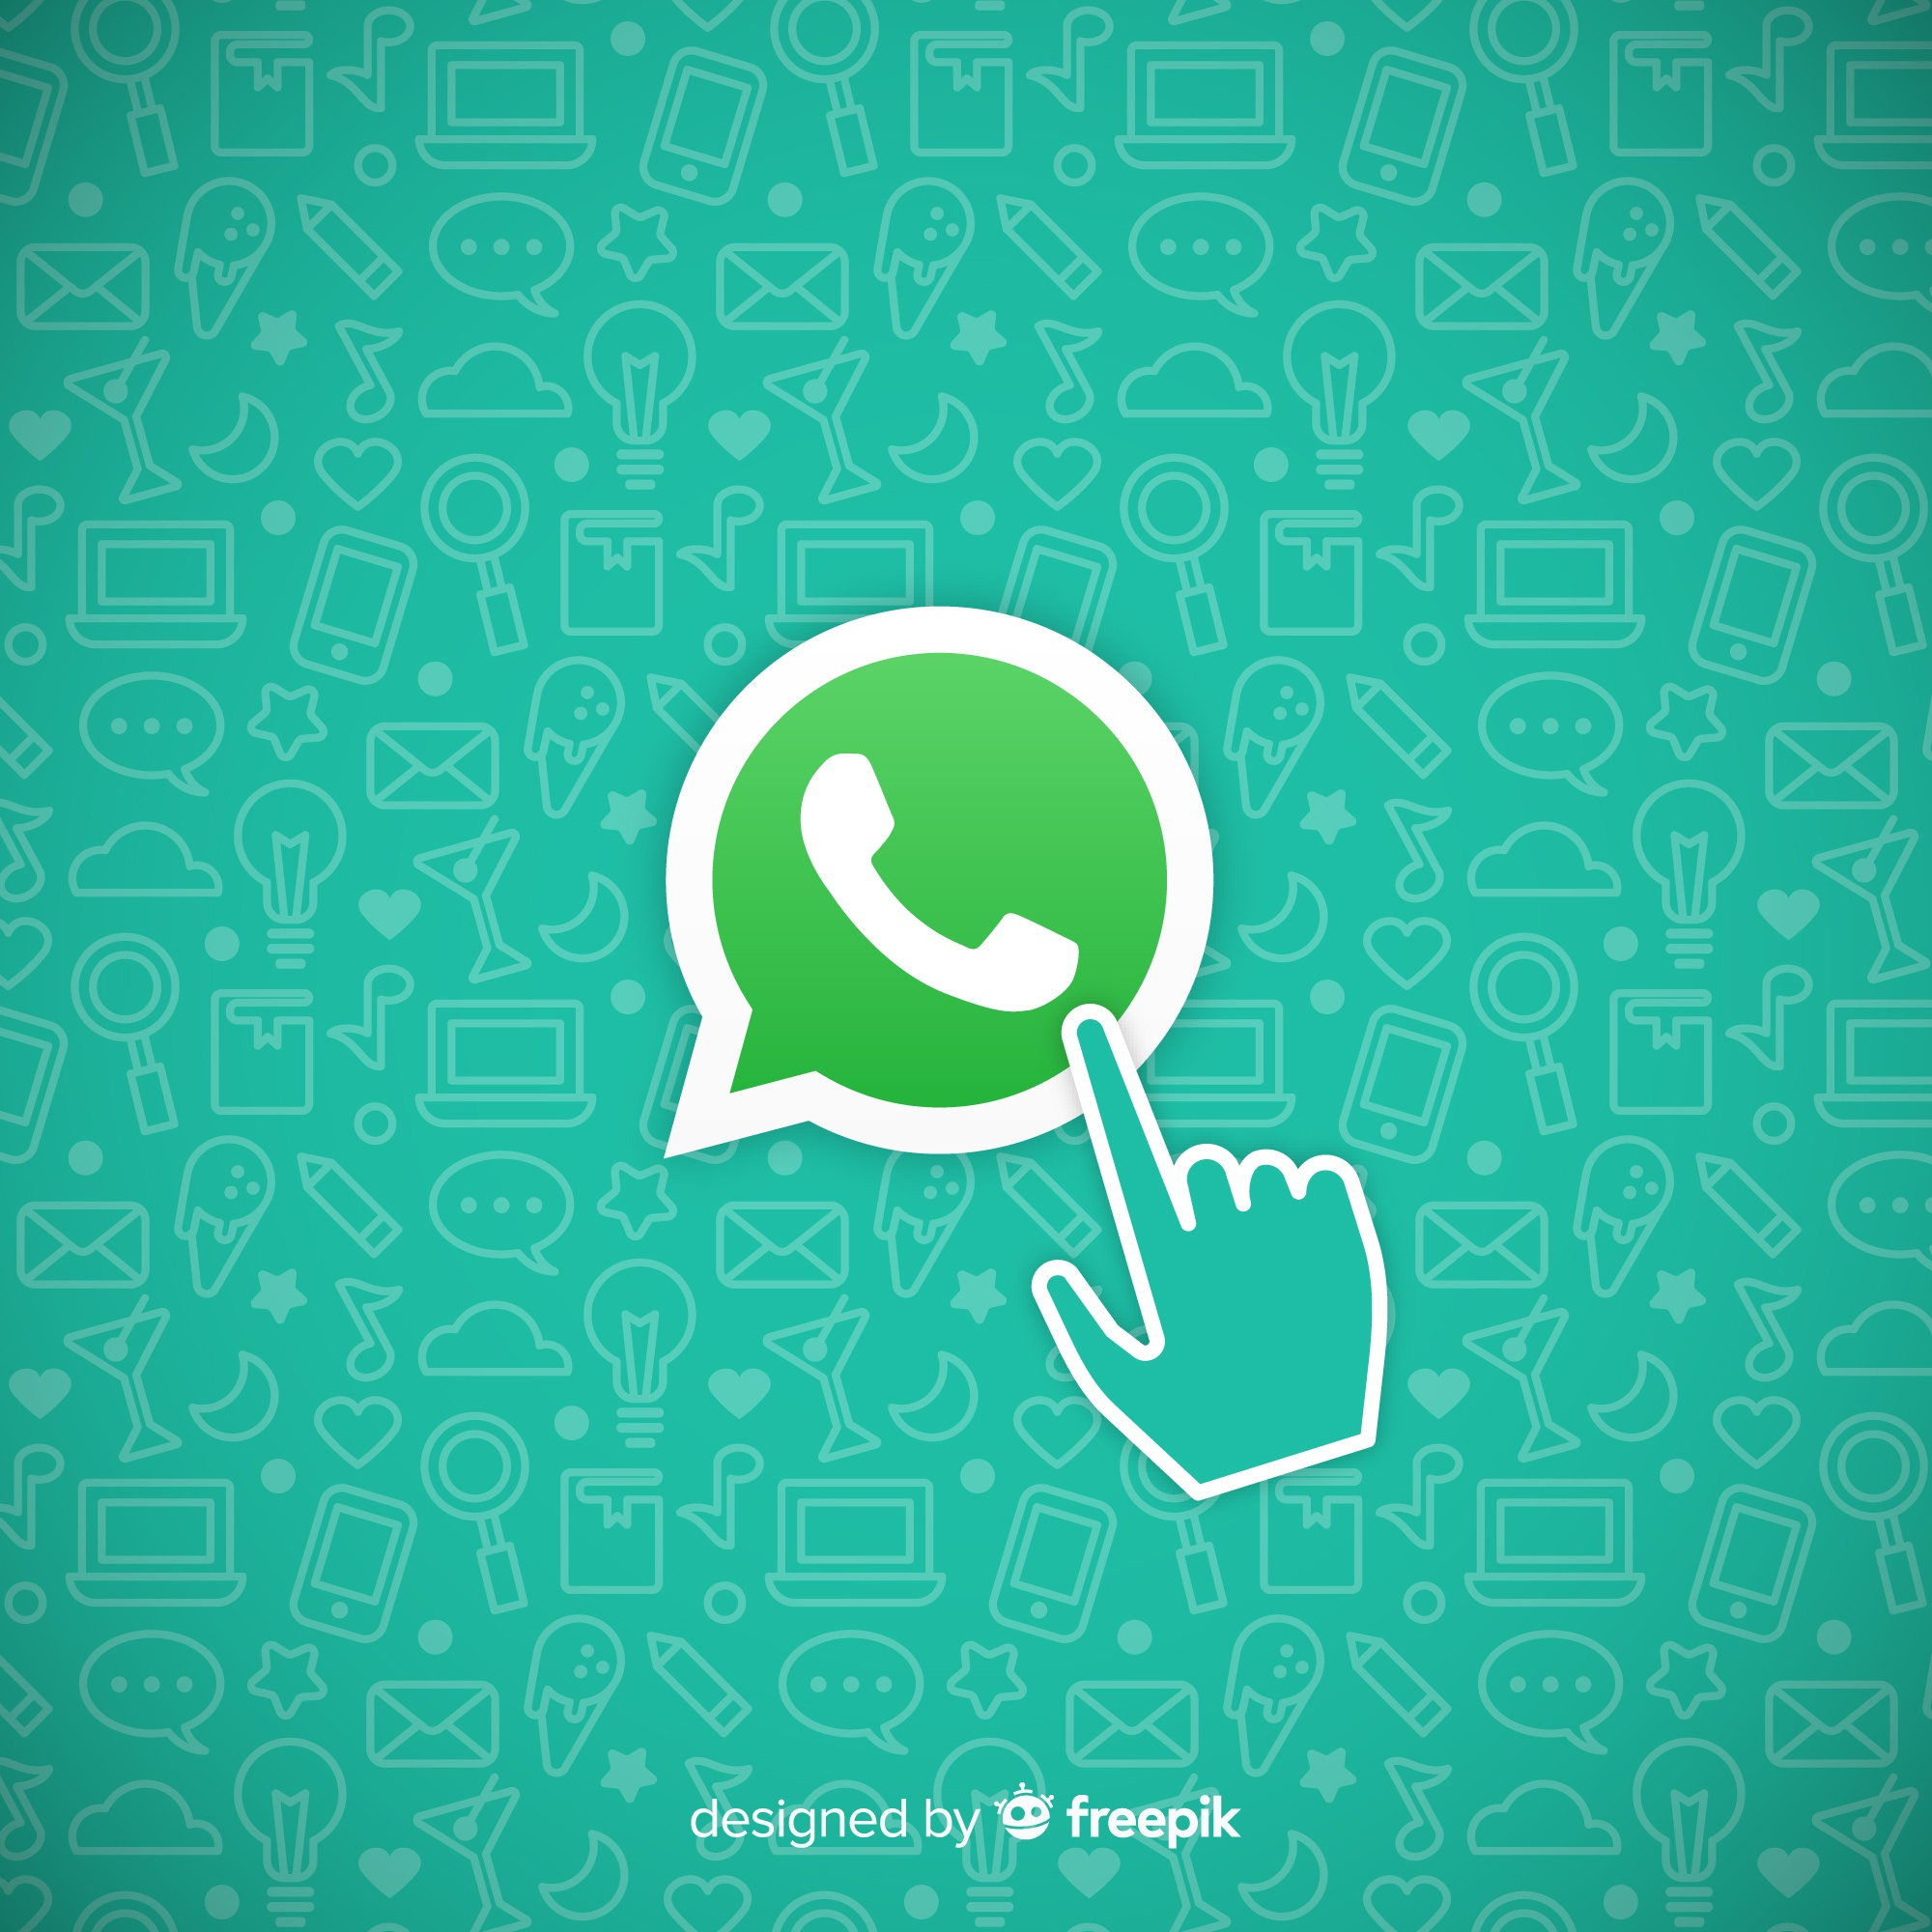 Whatsapp icon with hand